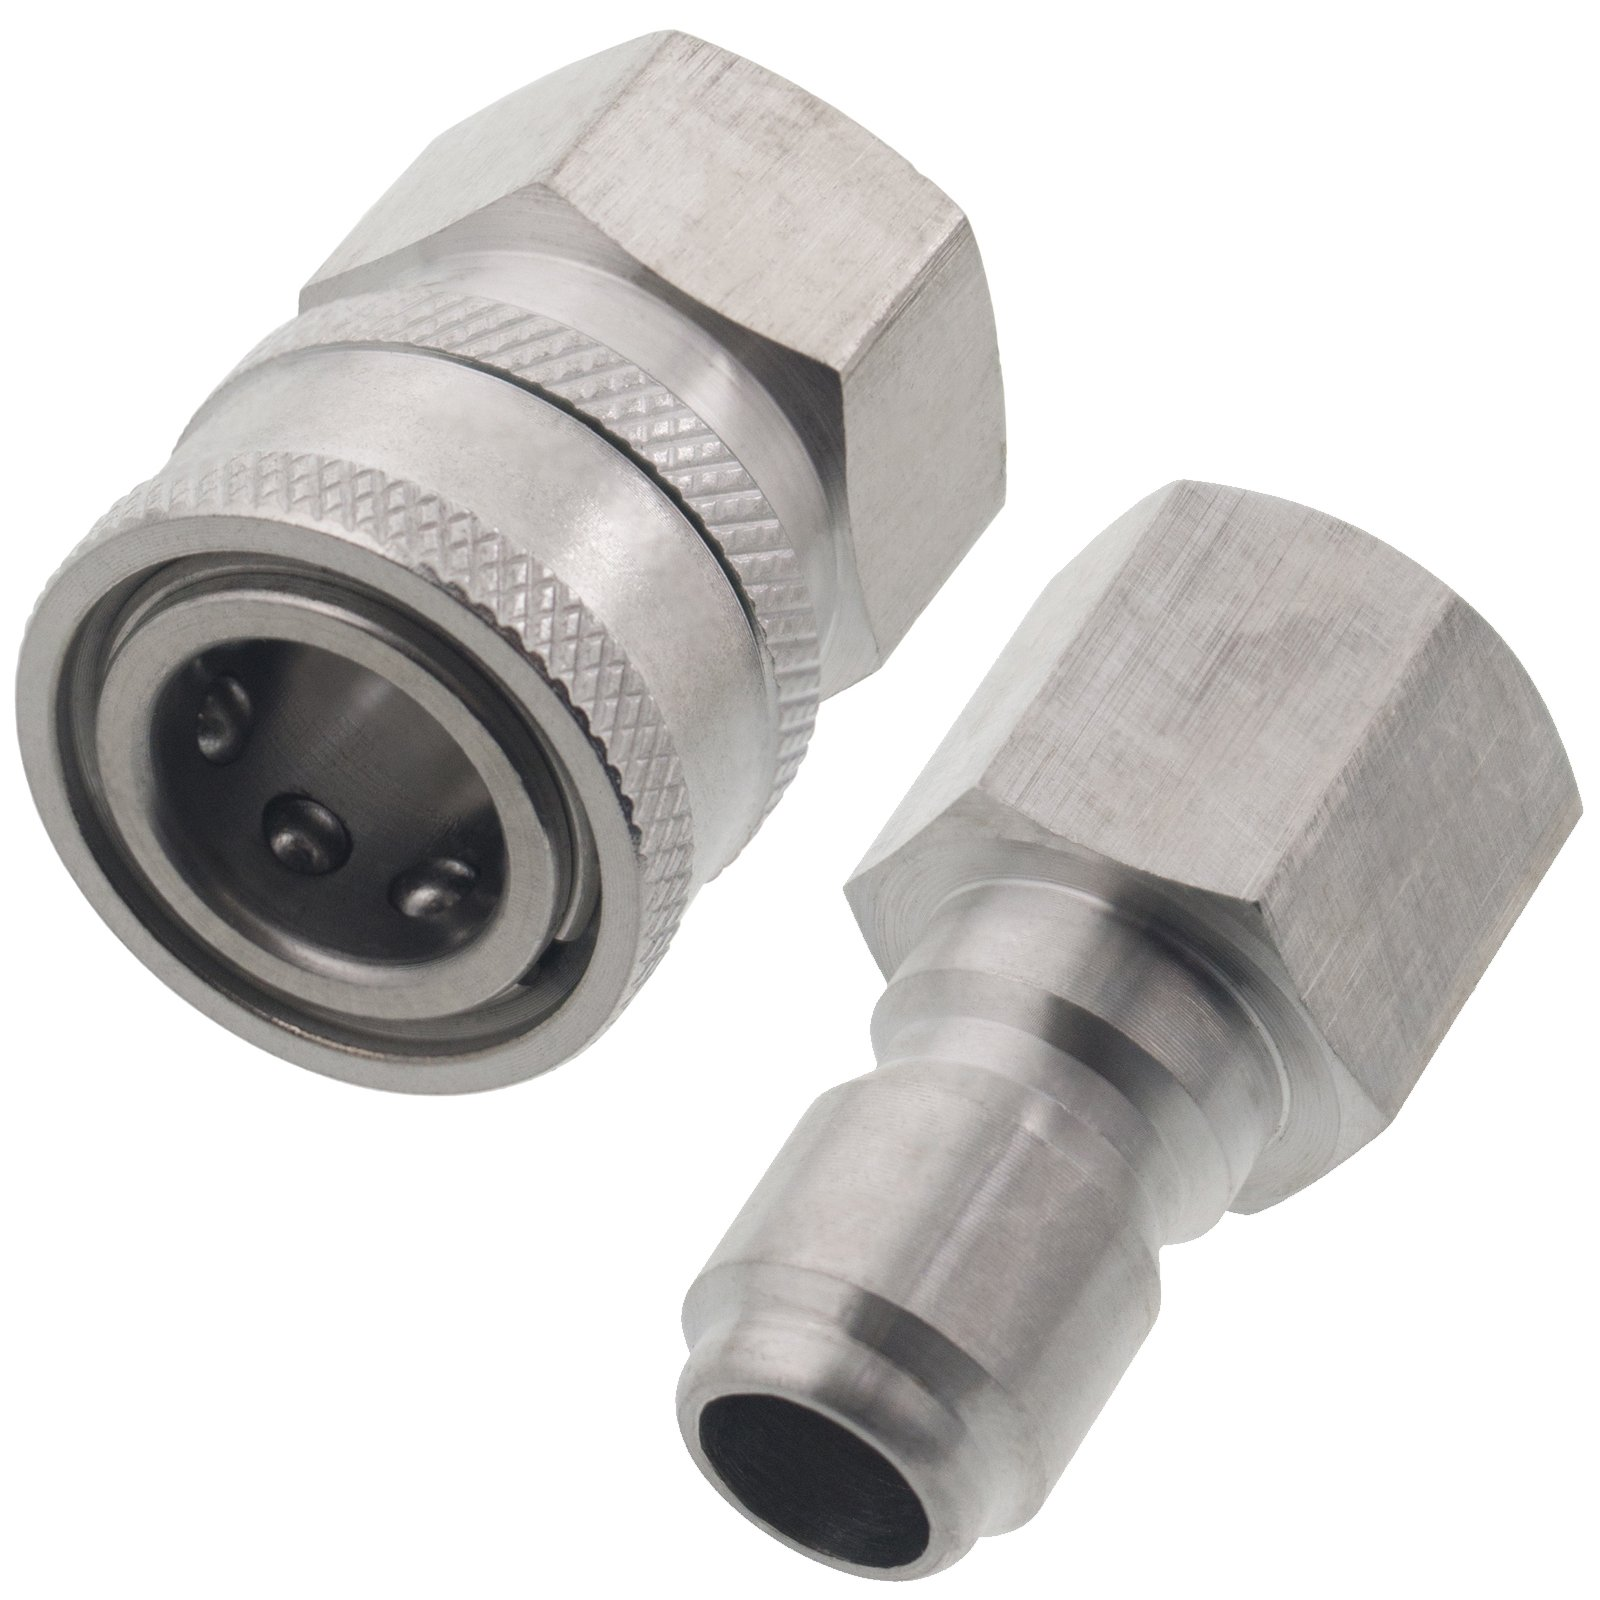 Erie Tools Pressure Washer 3/8in. Female NPT Quick Connect Stainless Steel Socket Set and Plug High Temp 5000 PSI 10.5 GPM by Erie Tools